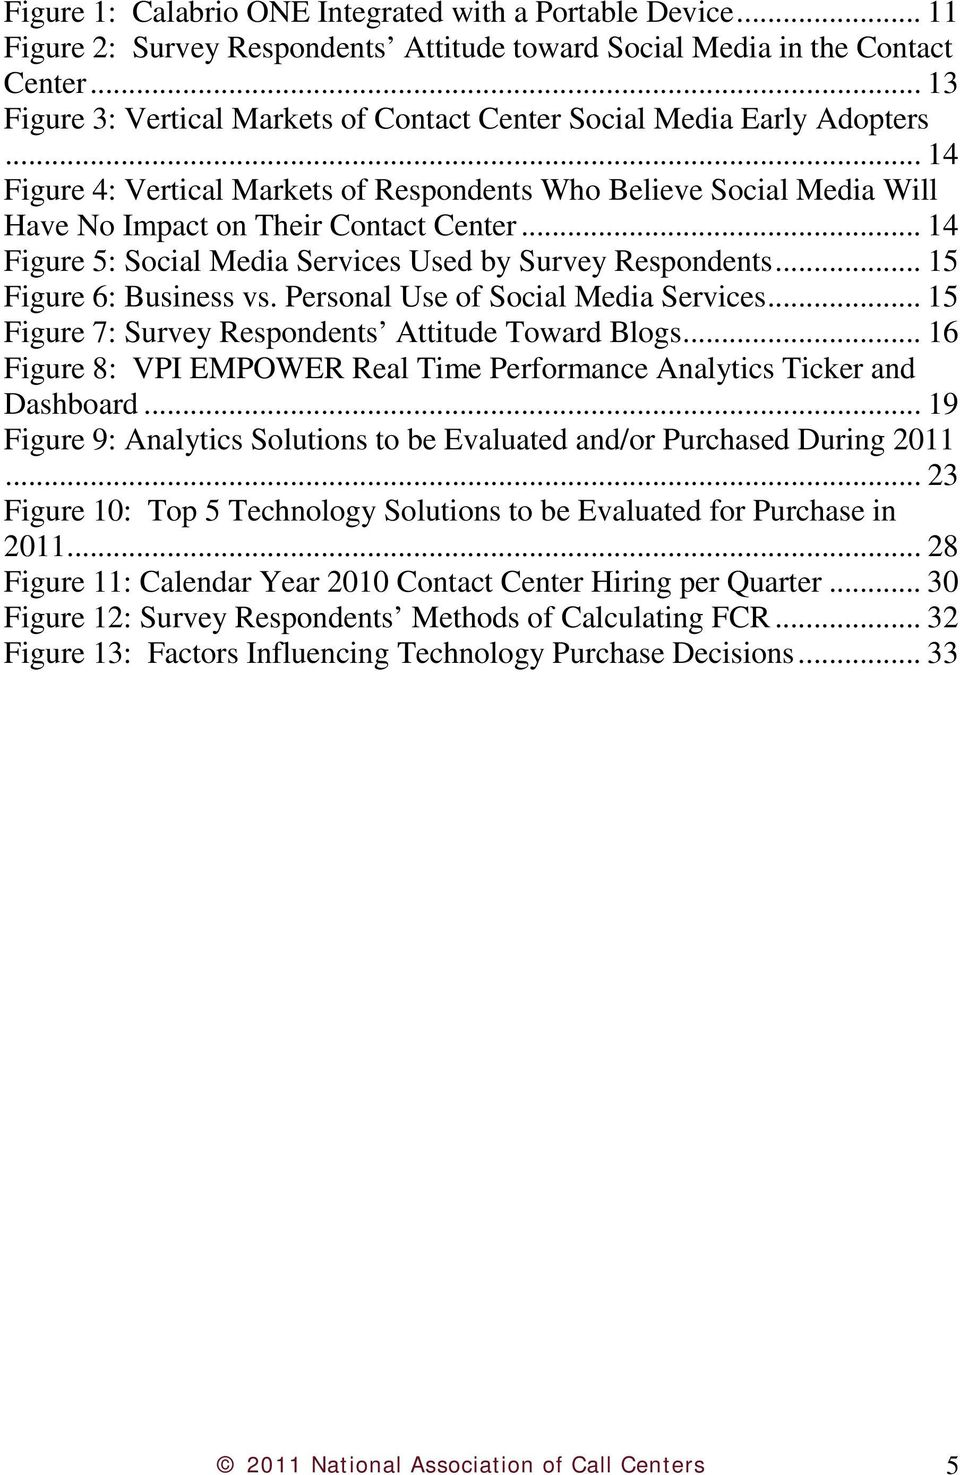 .. 14 Figure 5: Social Media Services Used by Survey Respondents... 15 Figure 6: Business vs. Personal Use of Social Media Services... 15 Figure 7: Survey Respondents Attitude Toward Blogs.